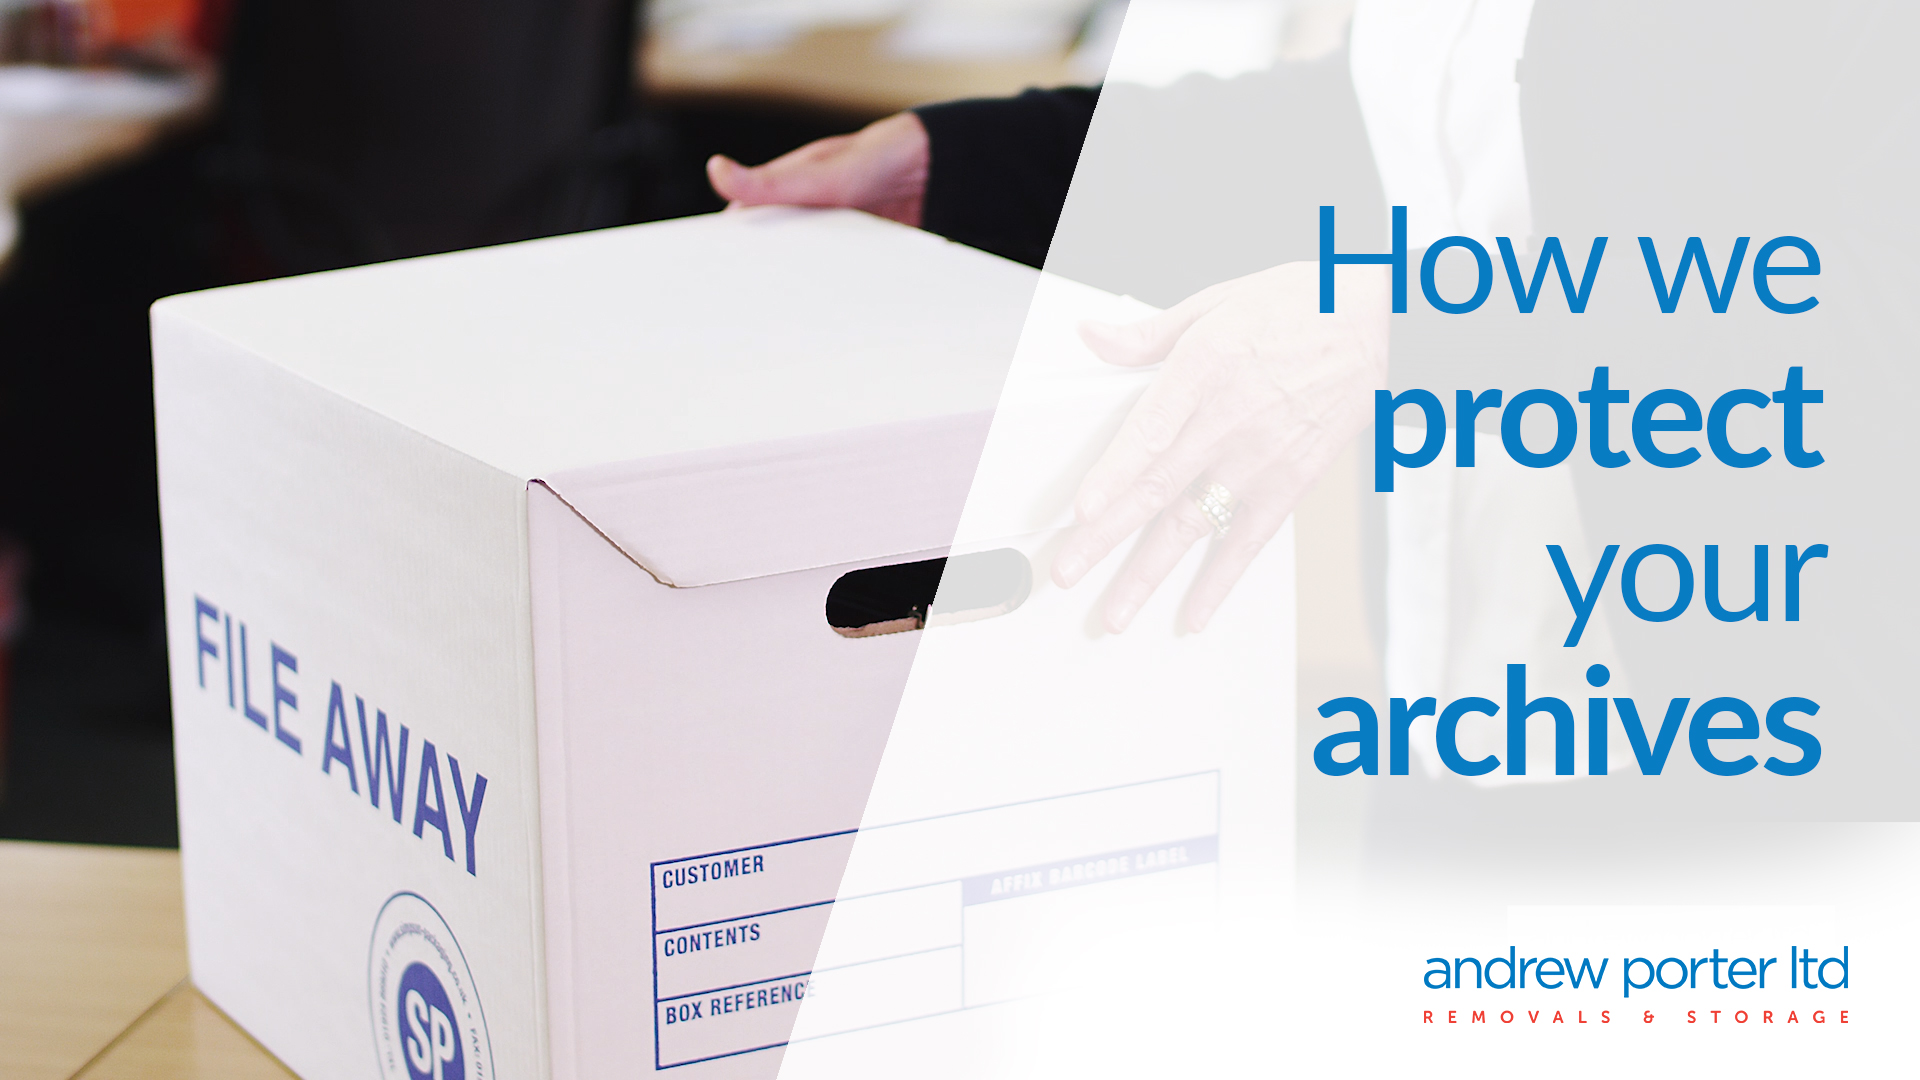 Storing your business archives securely